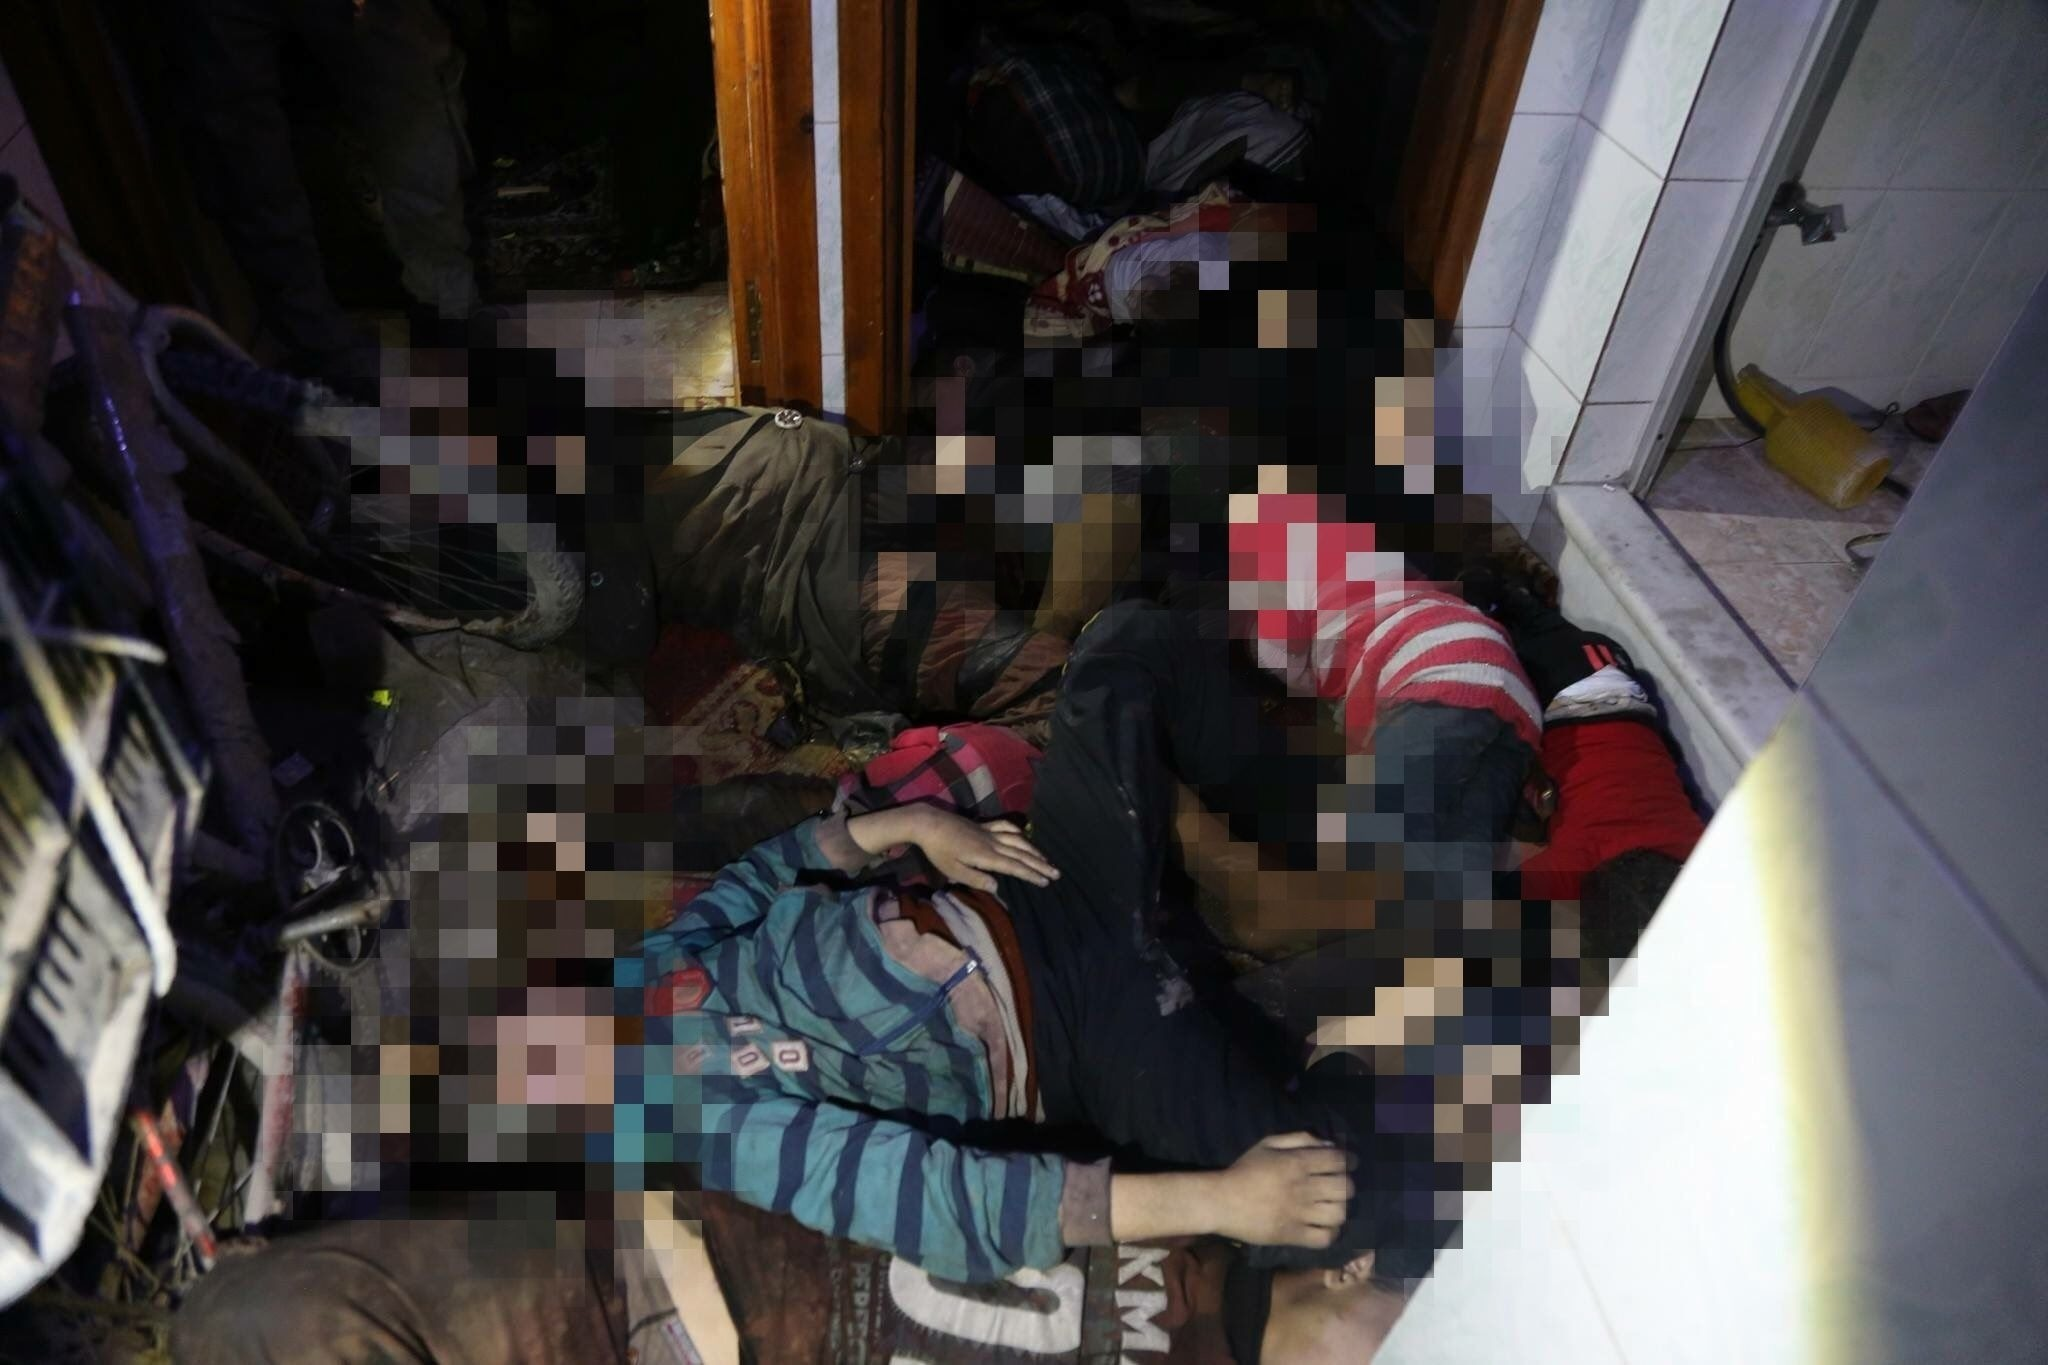 A handout image released by the Syrian Civil Defence on their Social Media pages on April 8, 2018, shows bodies inside a room following an alleged chemical attack on the rebel-held town of Douma. (AFP Photo)